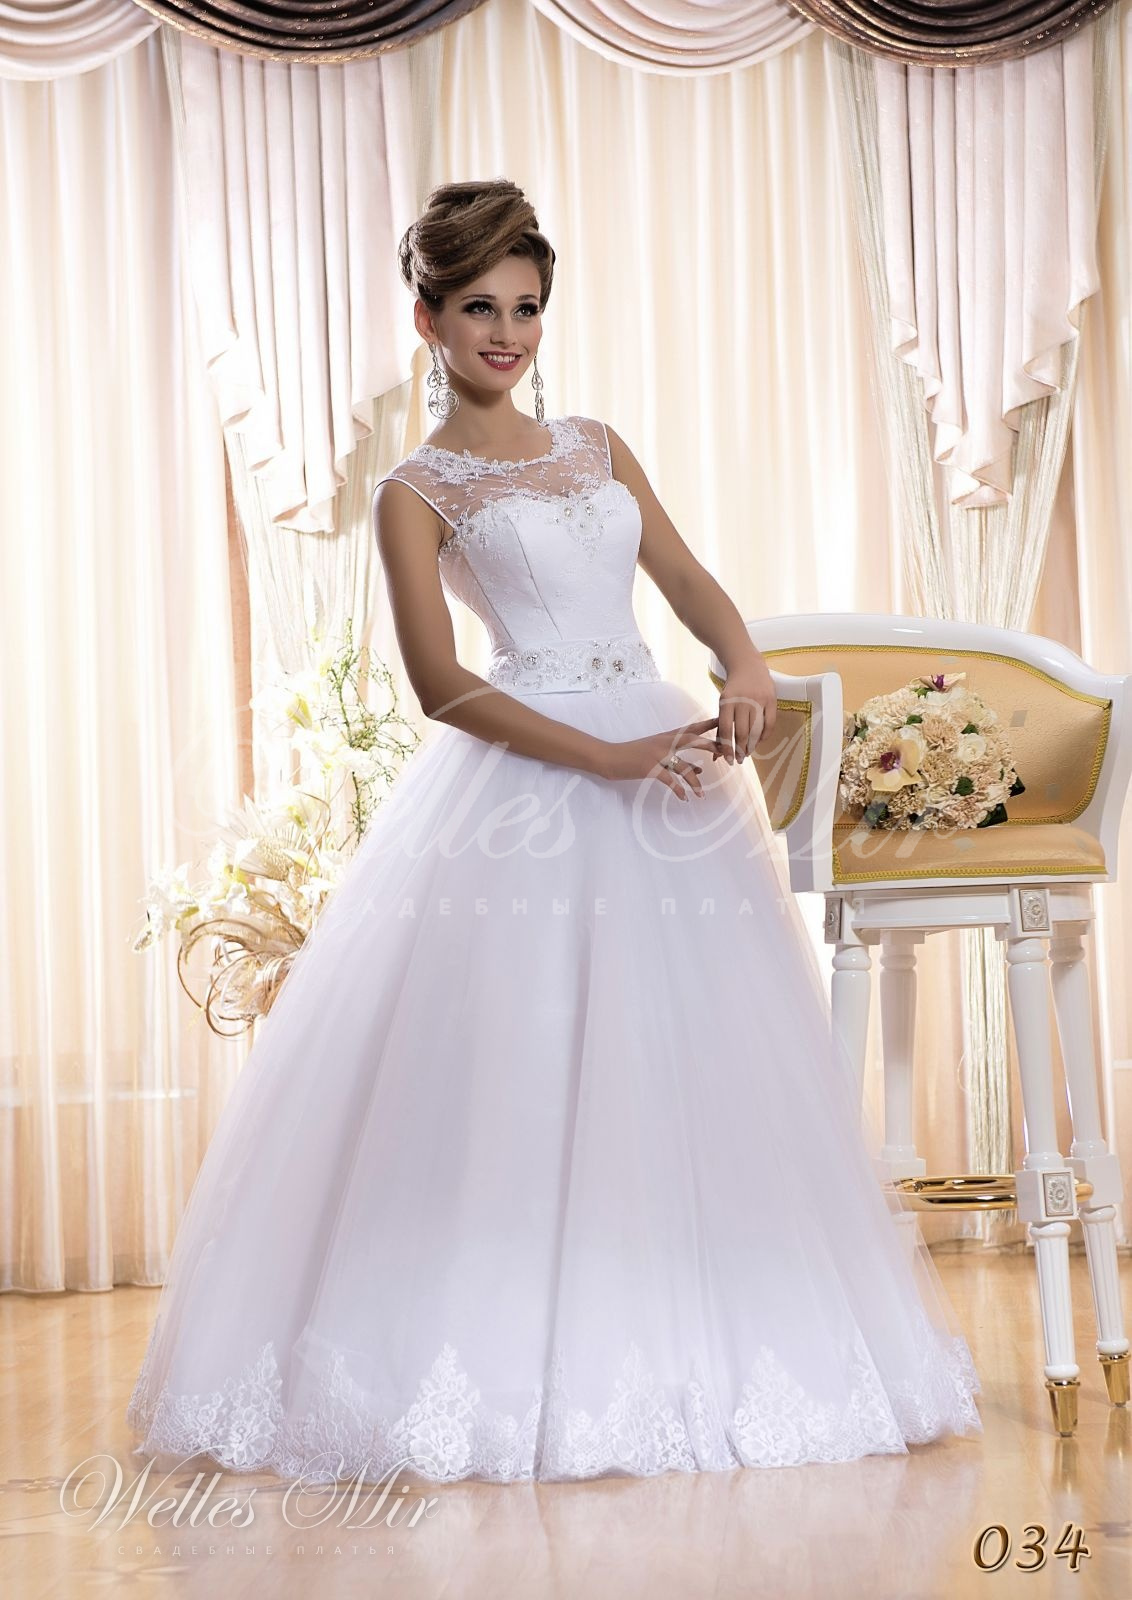 Wedding dresses 034